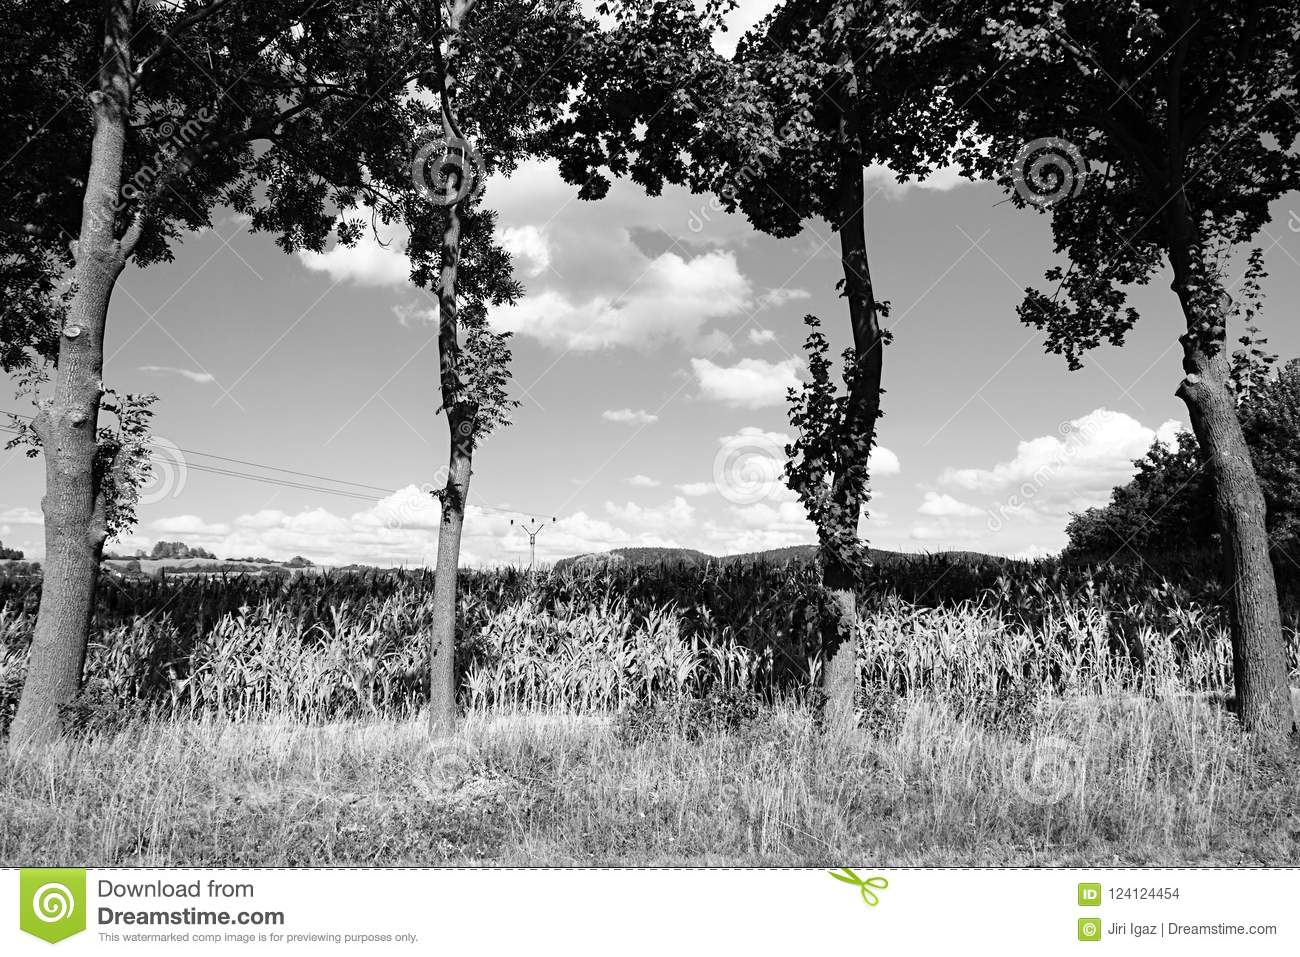 Four trees in front of corn field near Volyne city in Czech rebublic on 11th august 2018 during summer afternoon